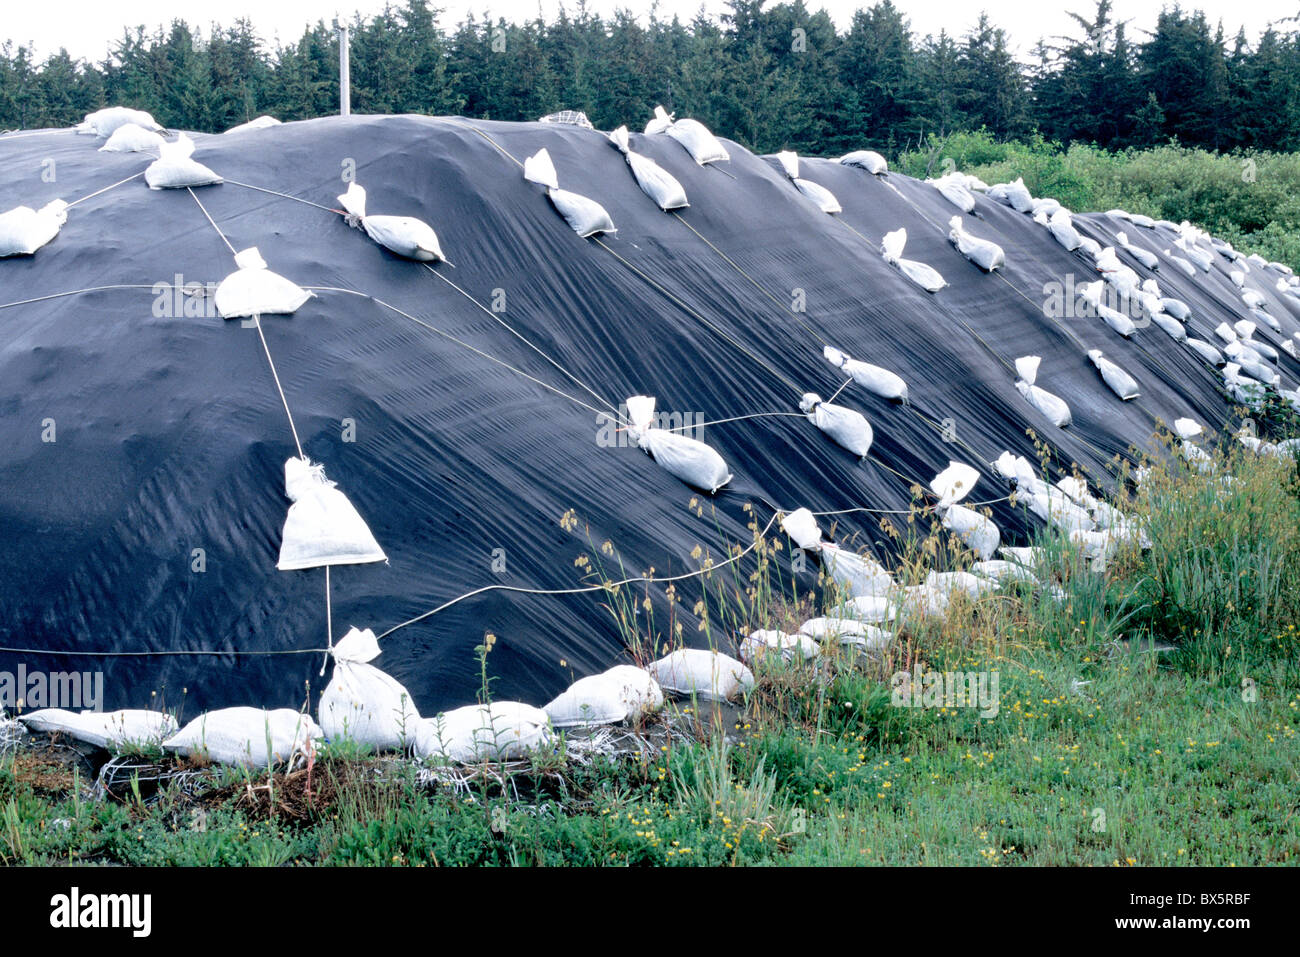 Covered contaminated soil, aerating to remove contaminants, - Stock Image